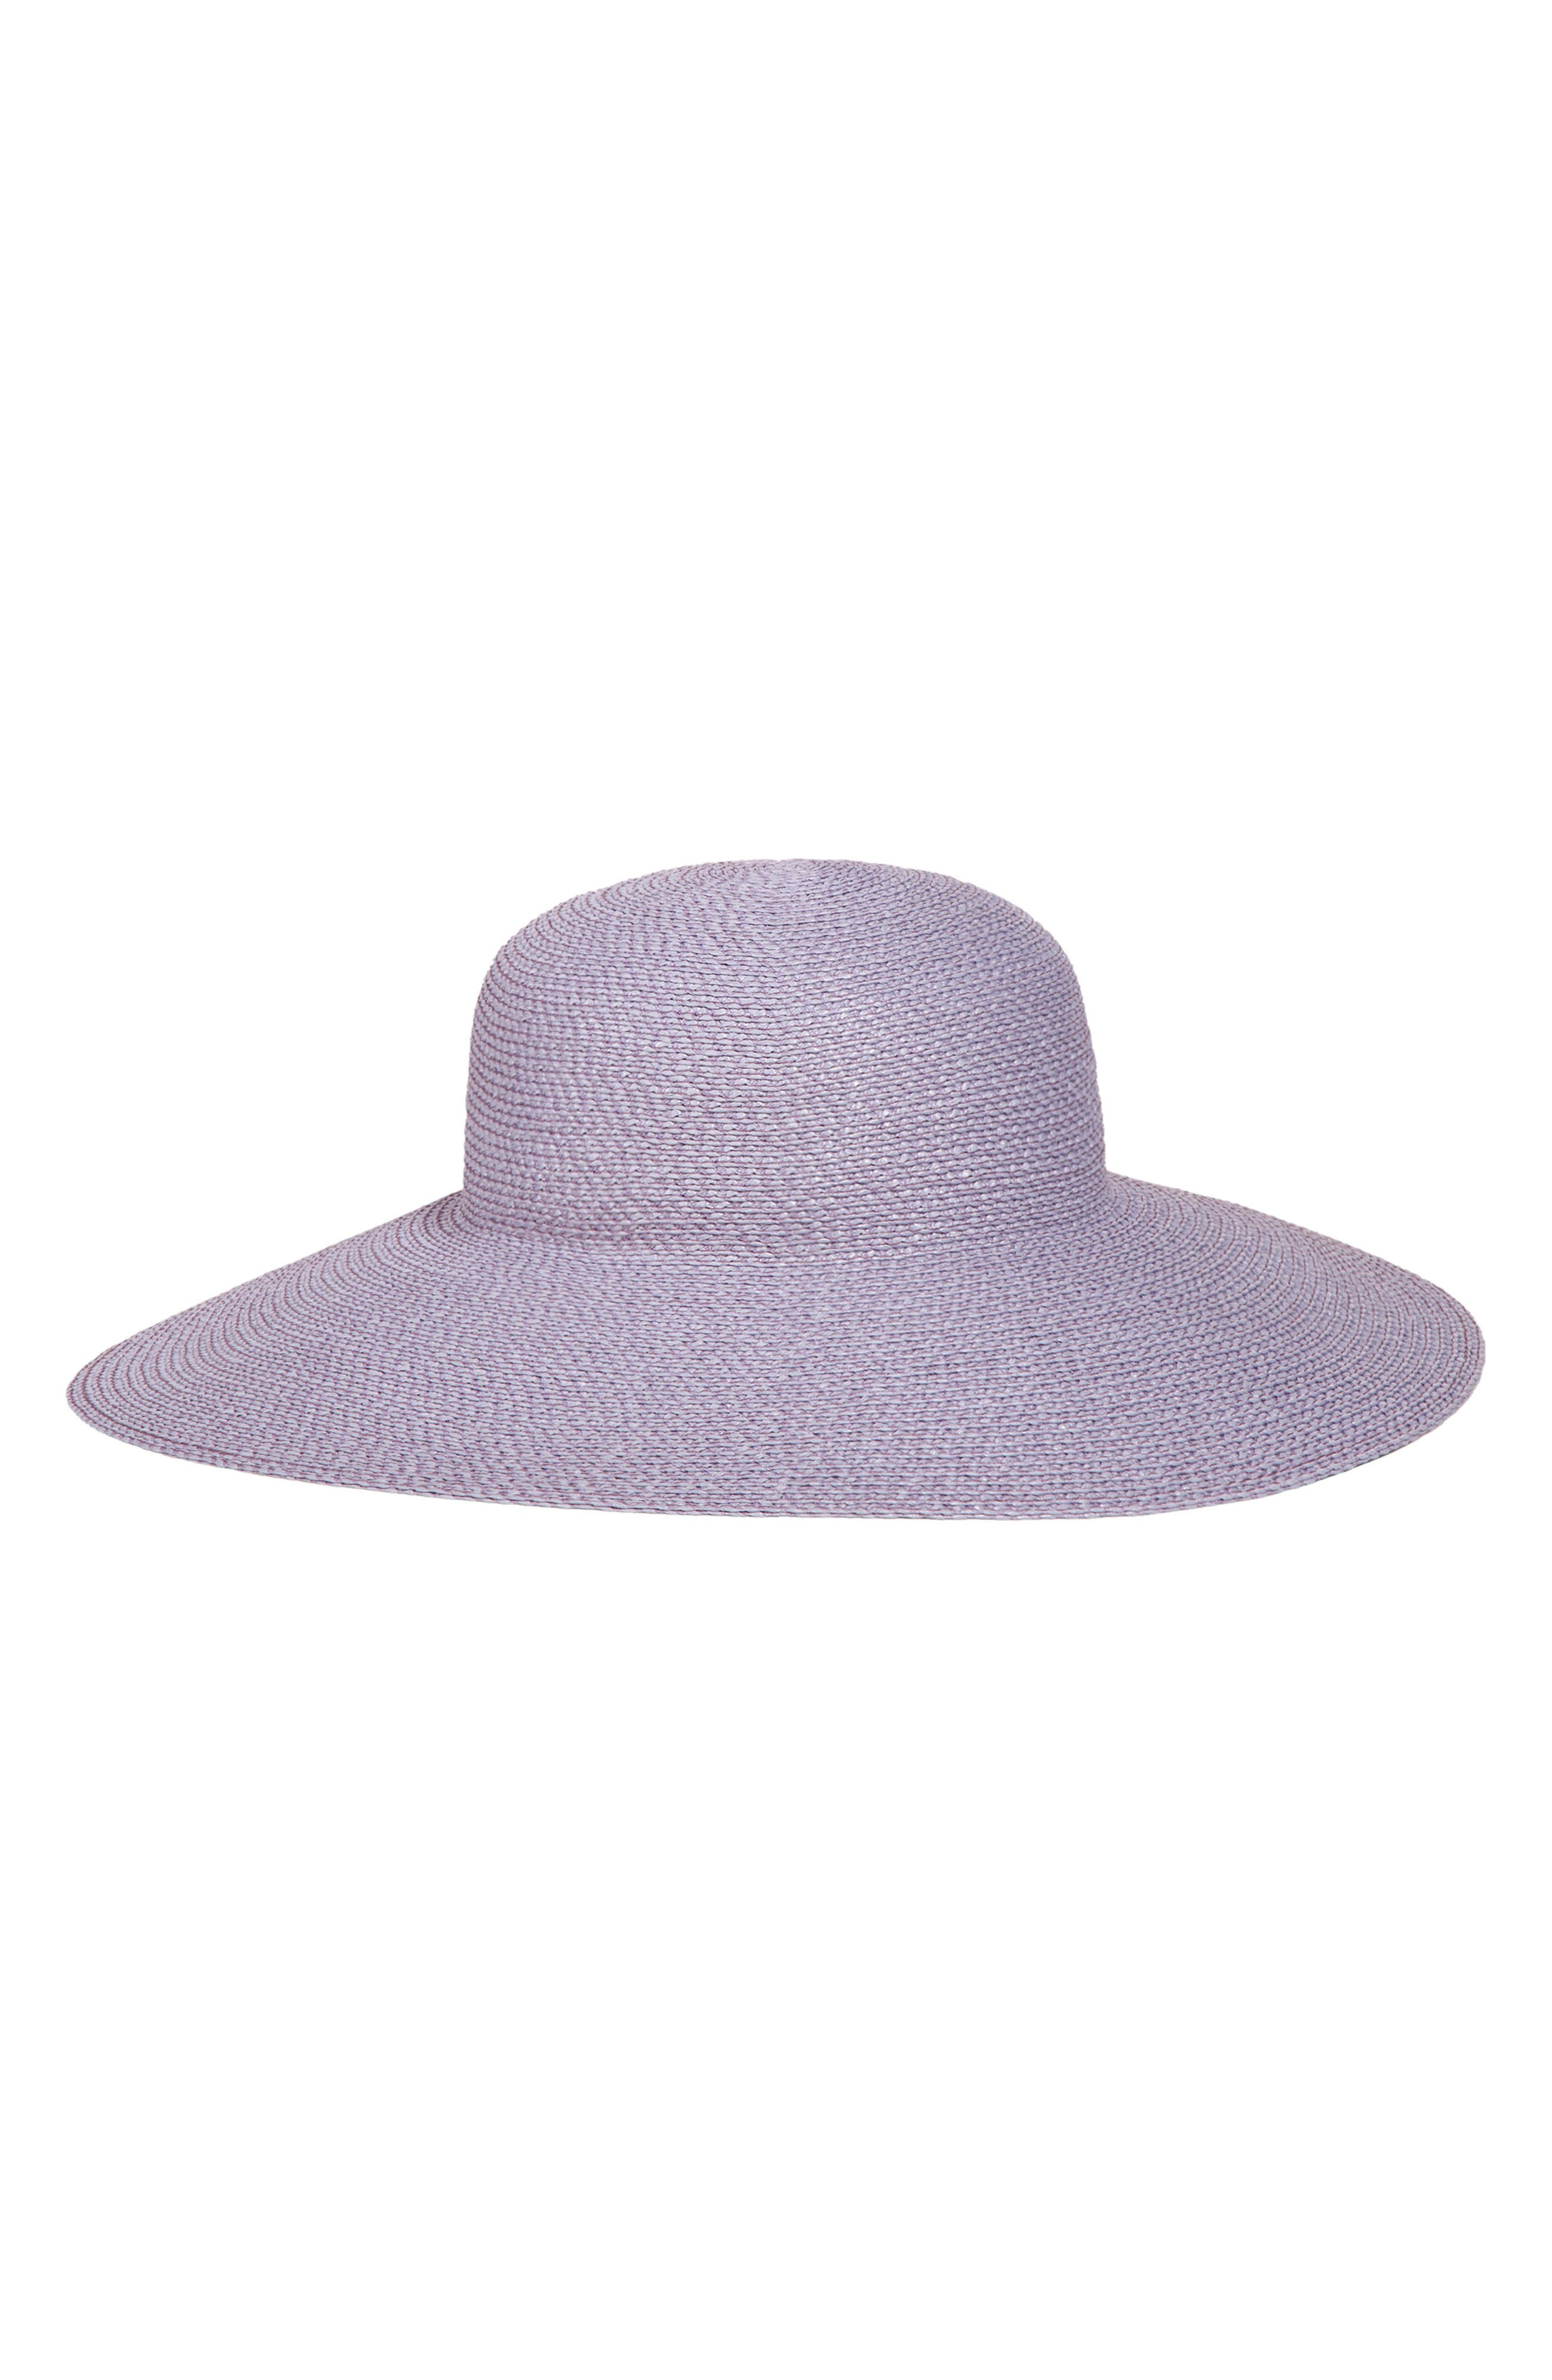 Bella Squishee<sup>®</sup> Sun Hat,                             Main thumbnail 1, color,                             LILAC